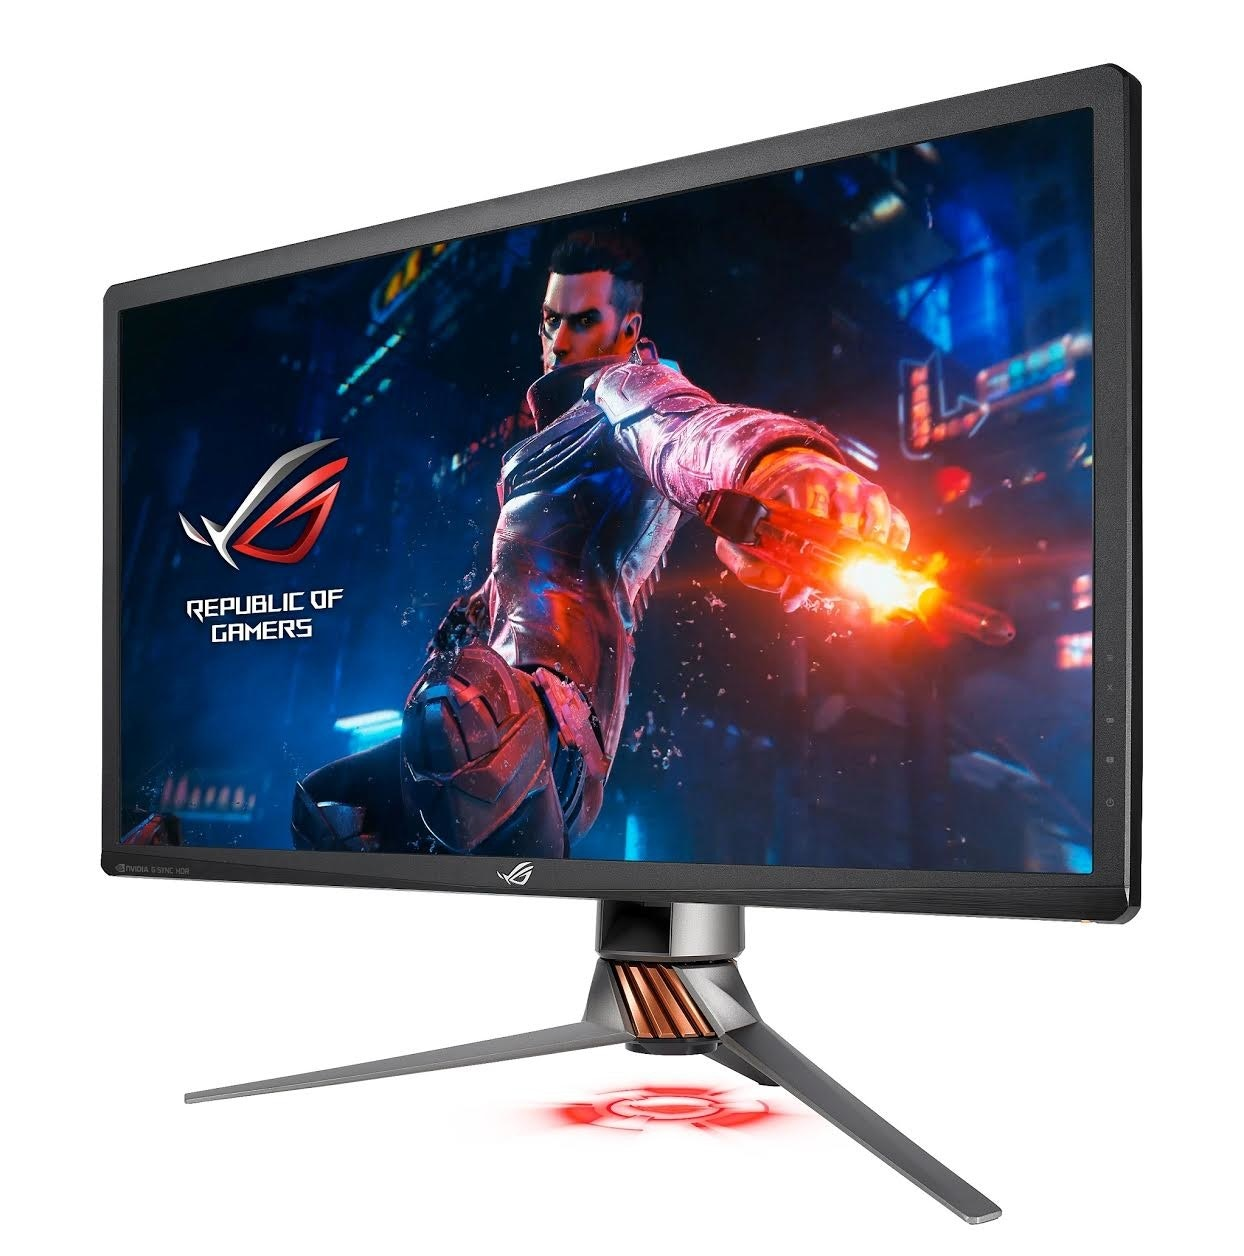 ROG Swift 4K HDR Gaming Monitor PG27UQ, Nvidia G-Sync, Computer Monitors, IPS panel, ASUS, , Ultra-high-definition television, 4K resolution, Refresh rate, High-dynamic-range imaging, asus pg27uq, technology, screen, display device, computer monitor, product, led backlit lcd display, television set, lcd tv, television, display advertising